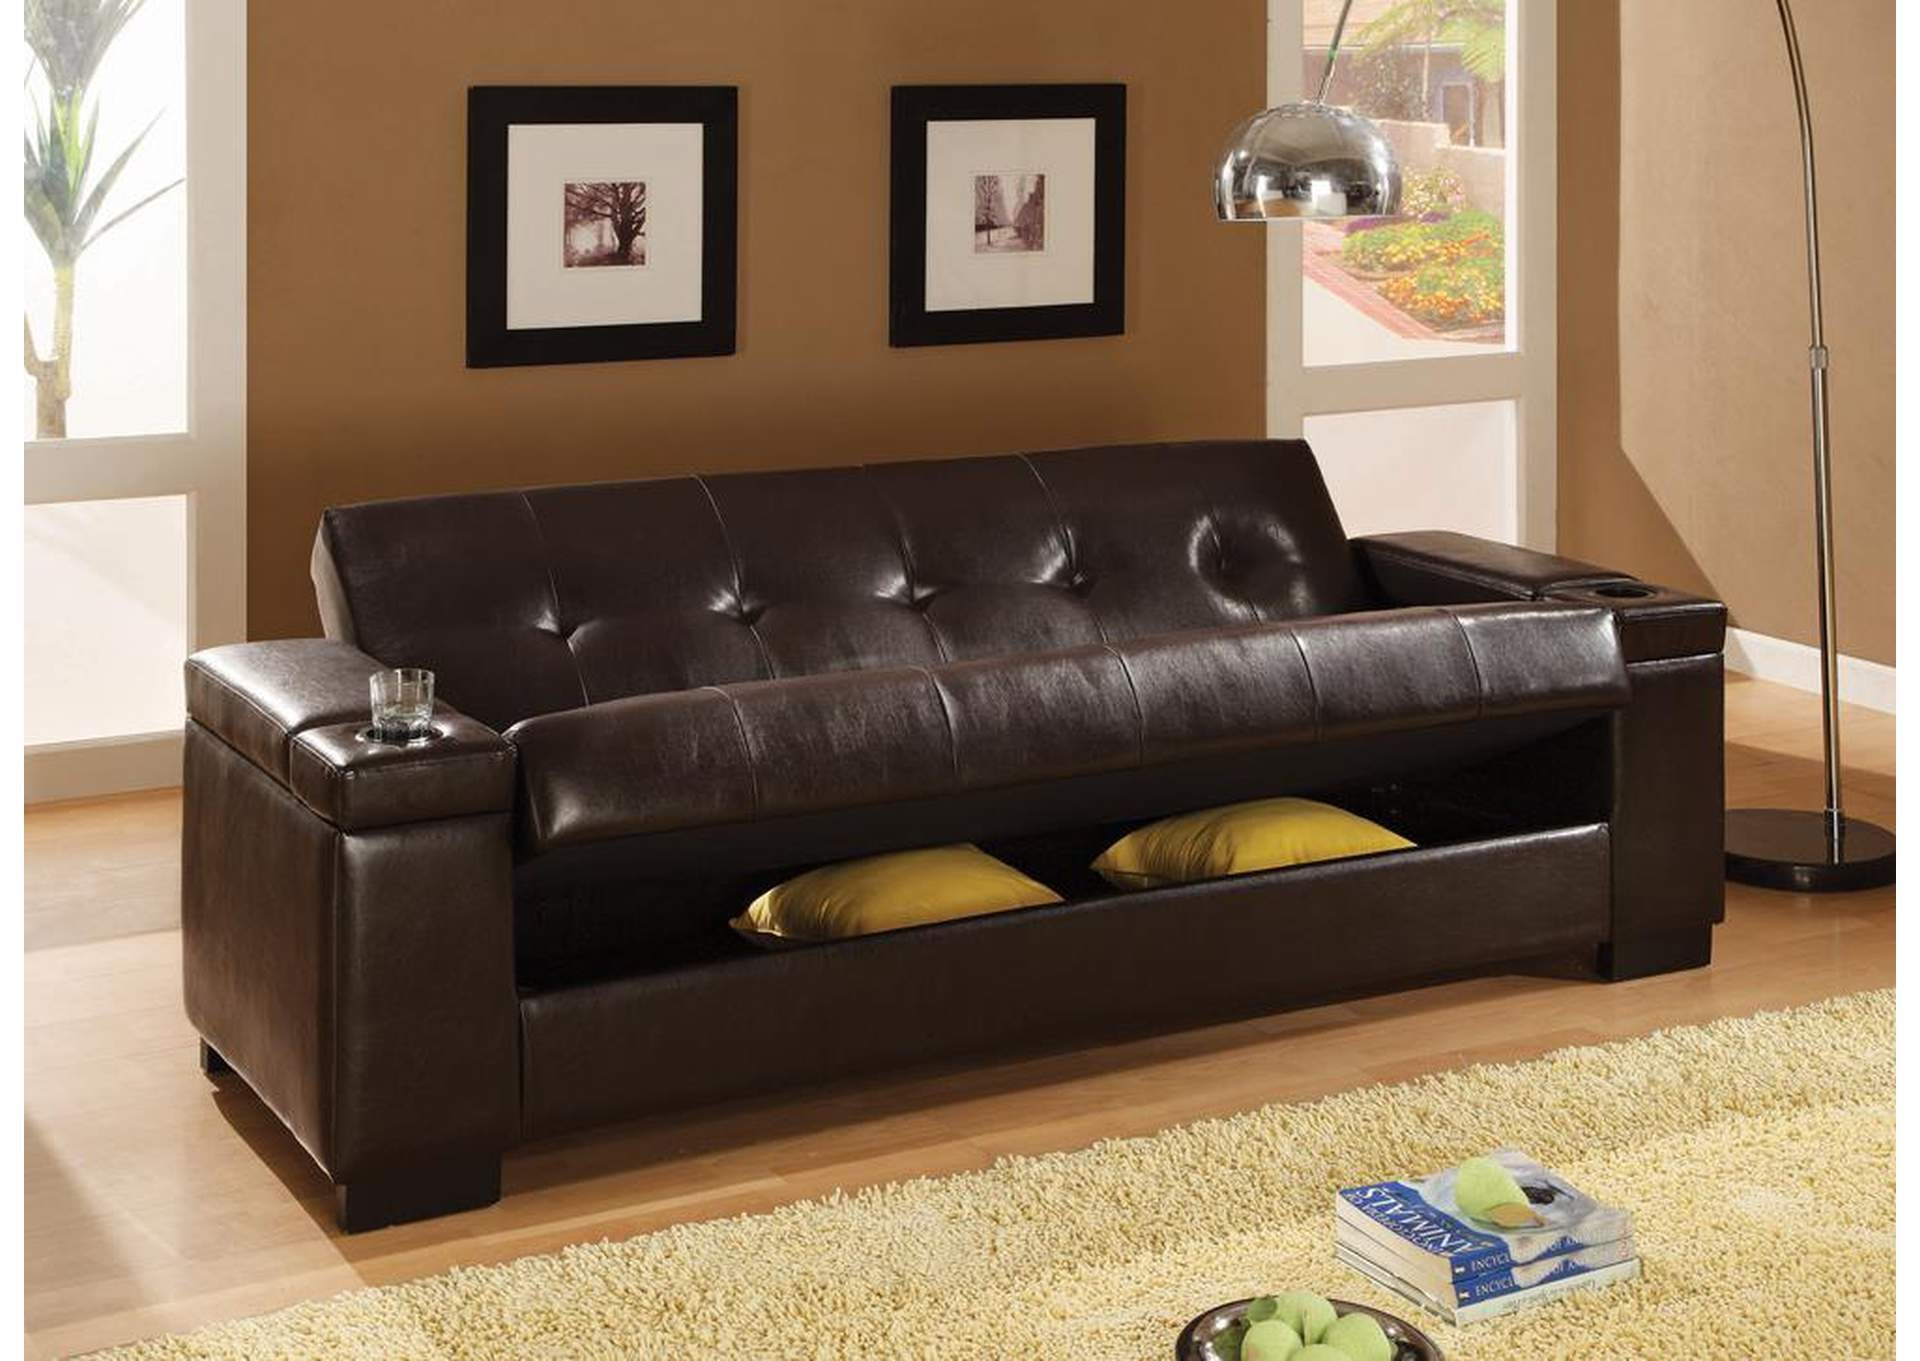 Star Furniture Leather Couches Ashley Peeling Sofas Covers Macys